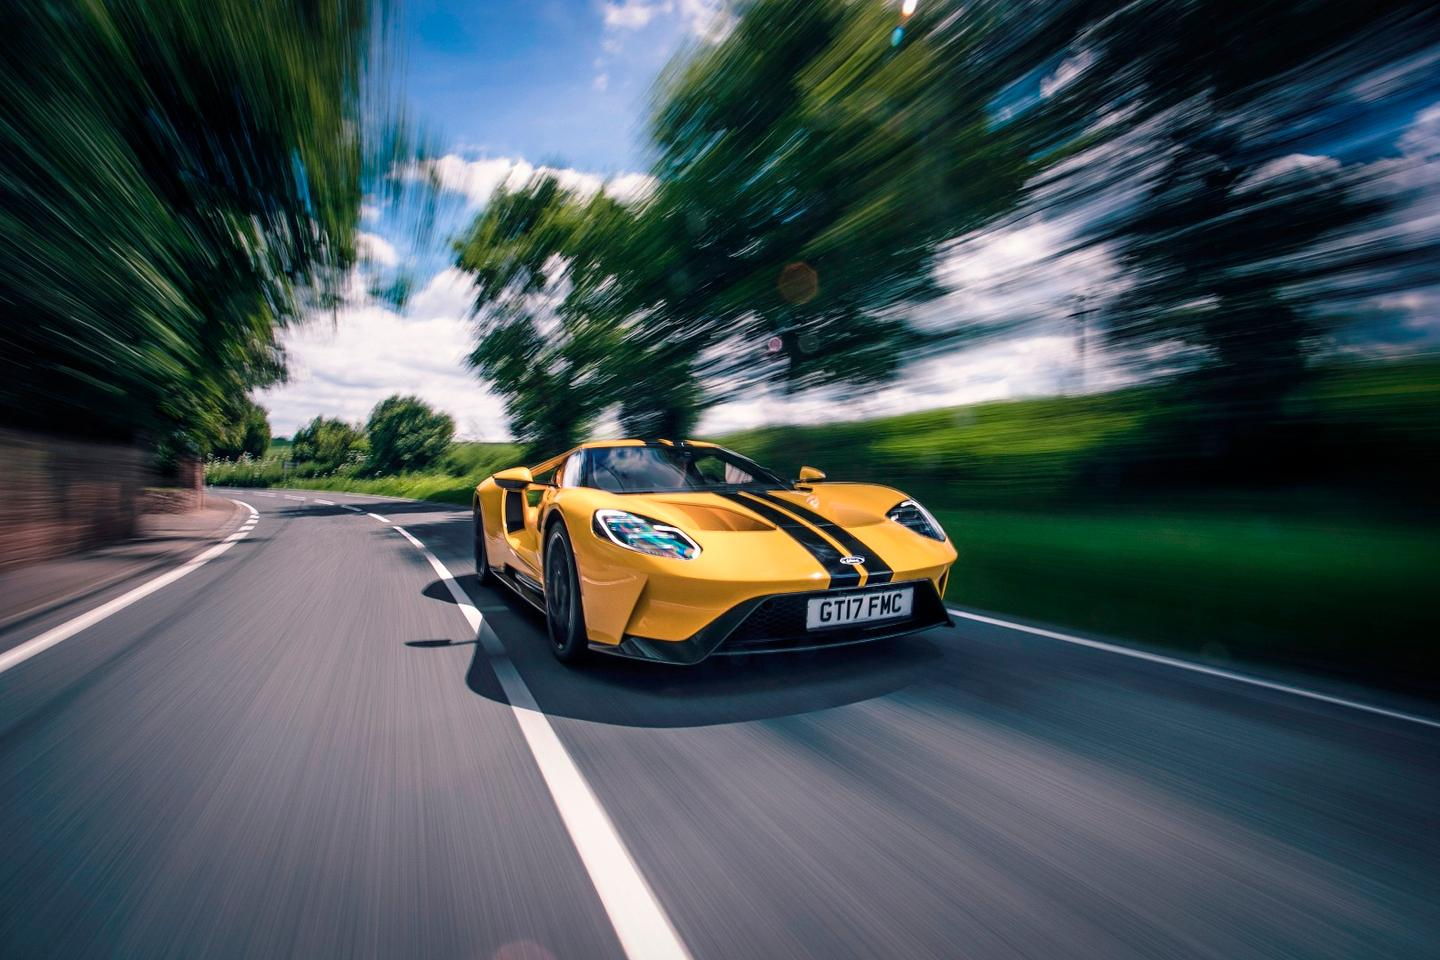 The Ford GT, photographed in the UK